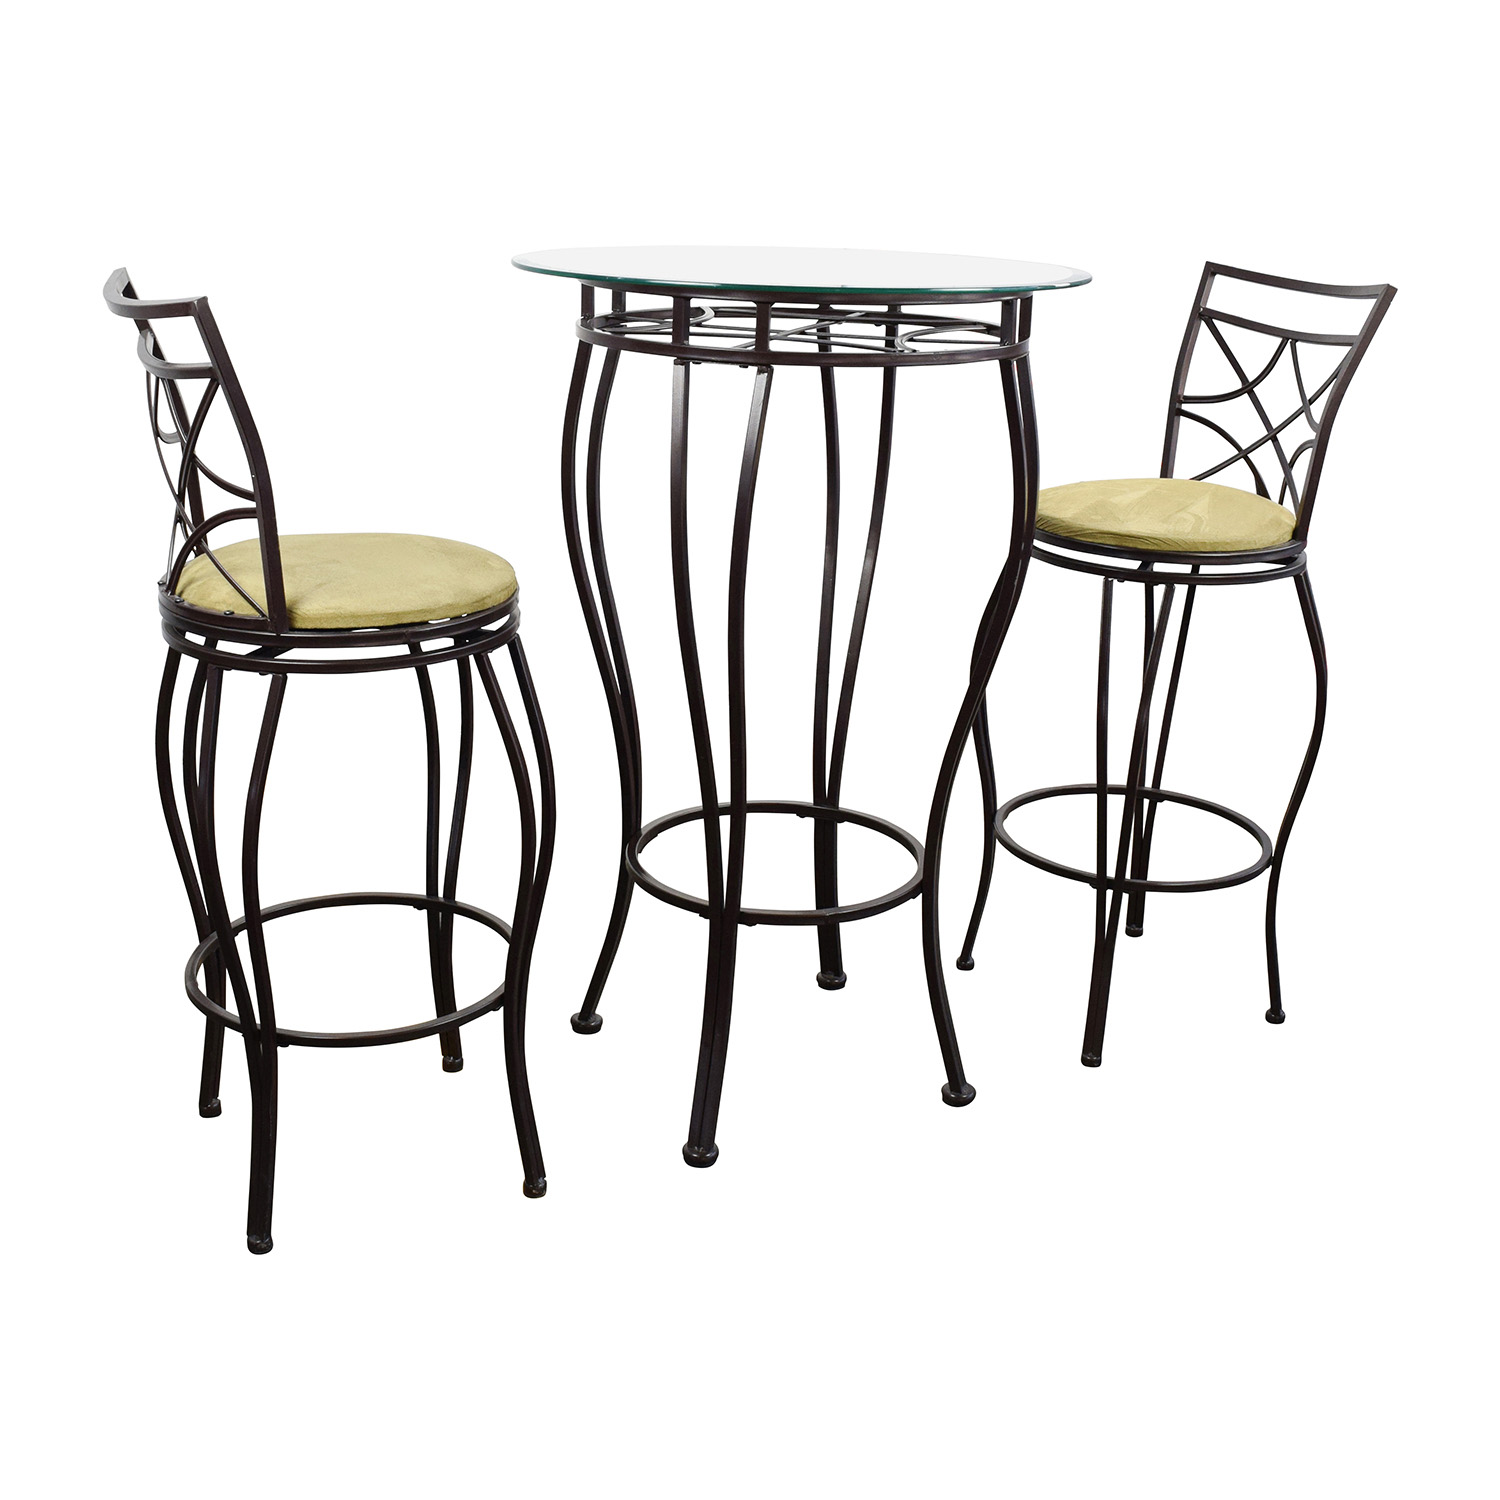 2 chair bistro set revolving executive 89 off iron table and two chairs tables